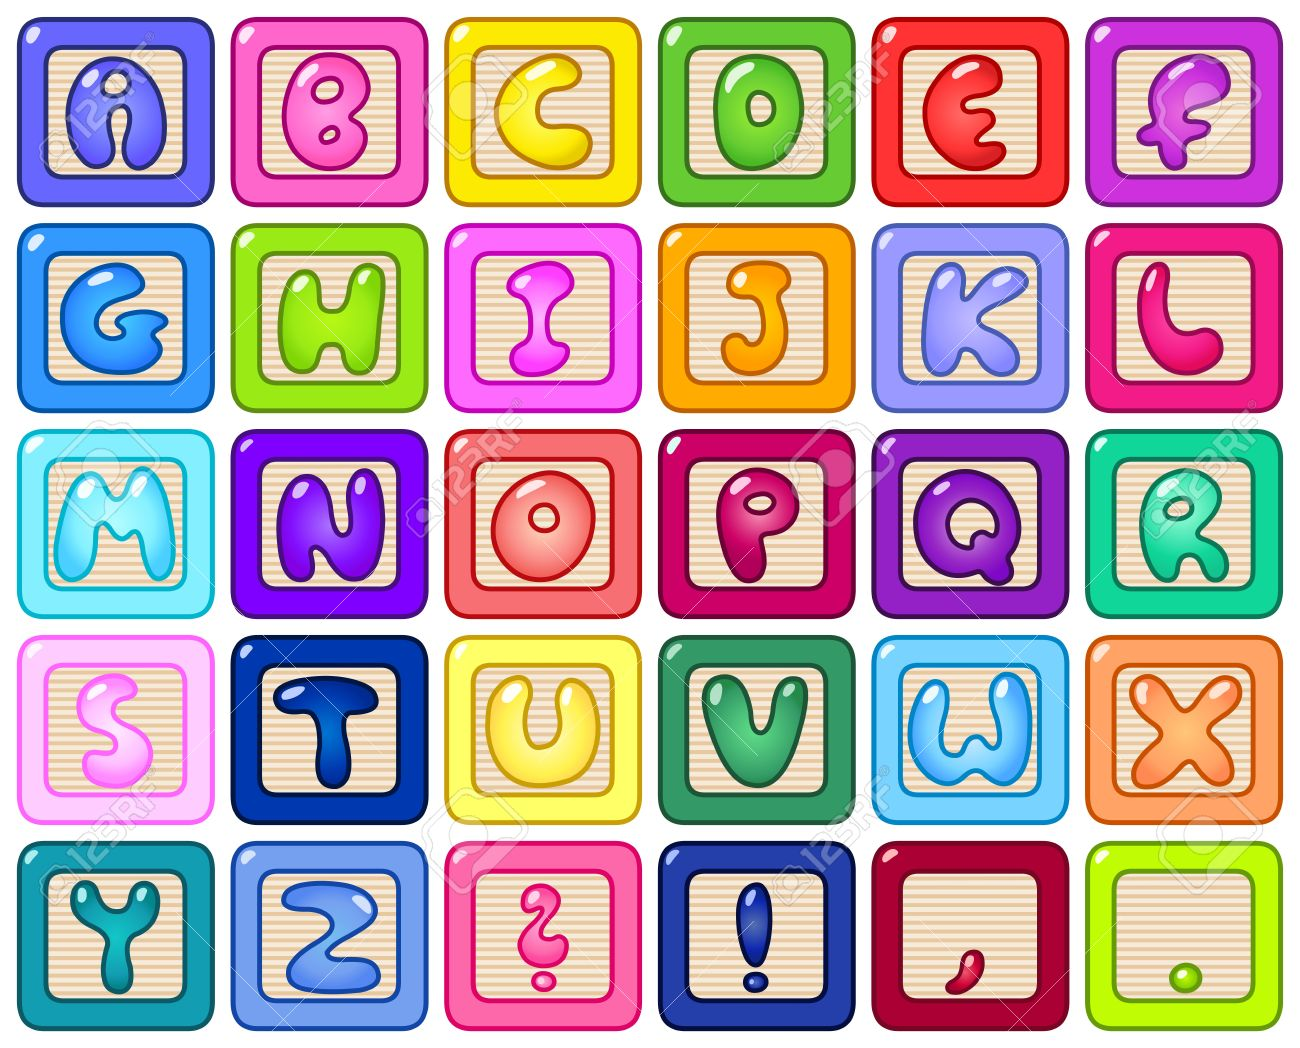 blocks stock illustrations. Alphabet block clipart